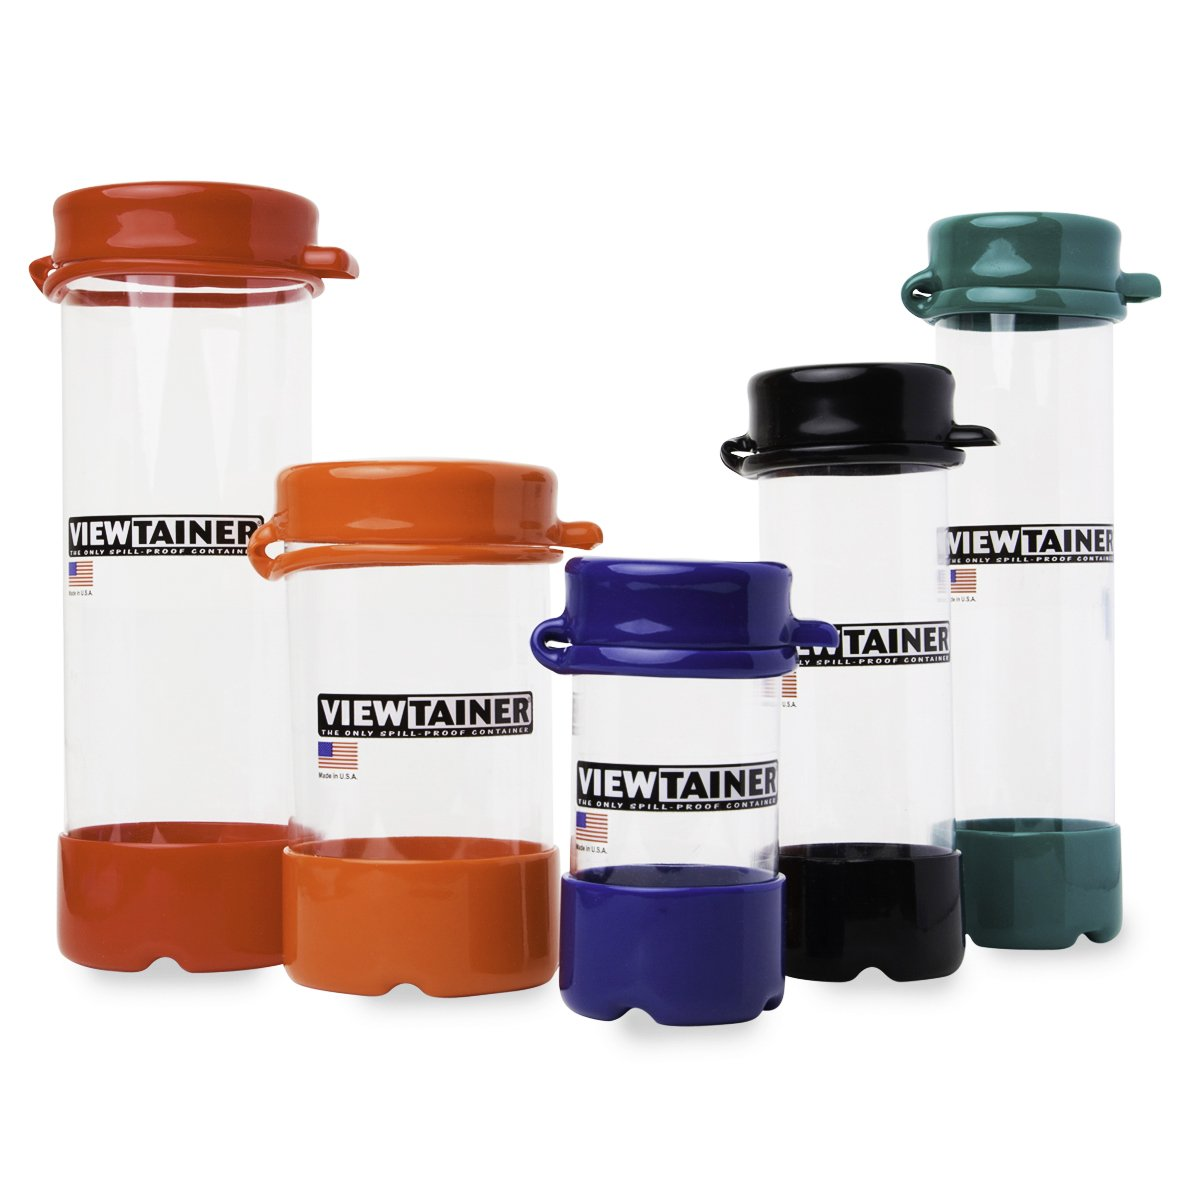 Viewtainer Tethered-Top Container 5-Pack (Pastel)